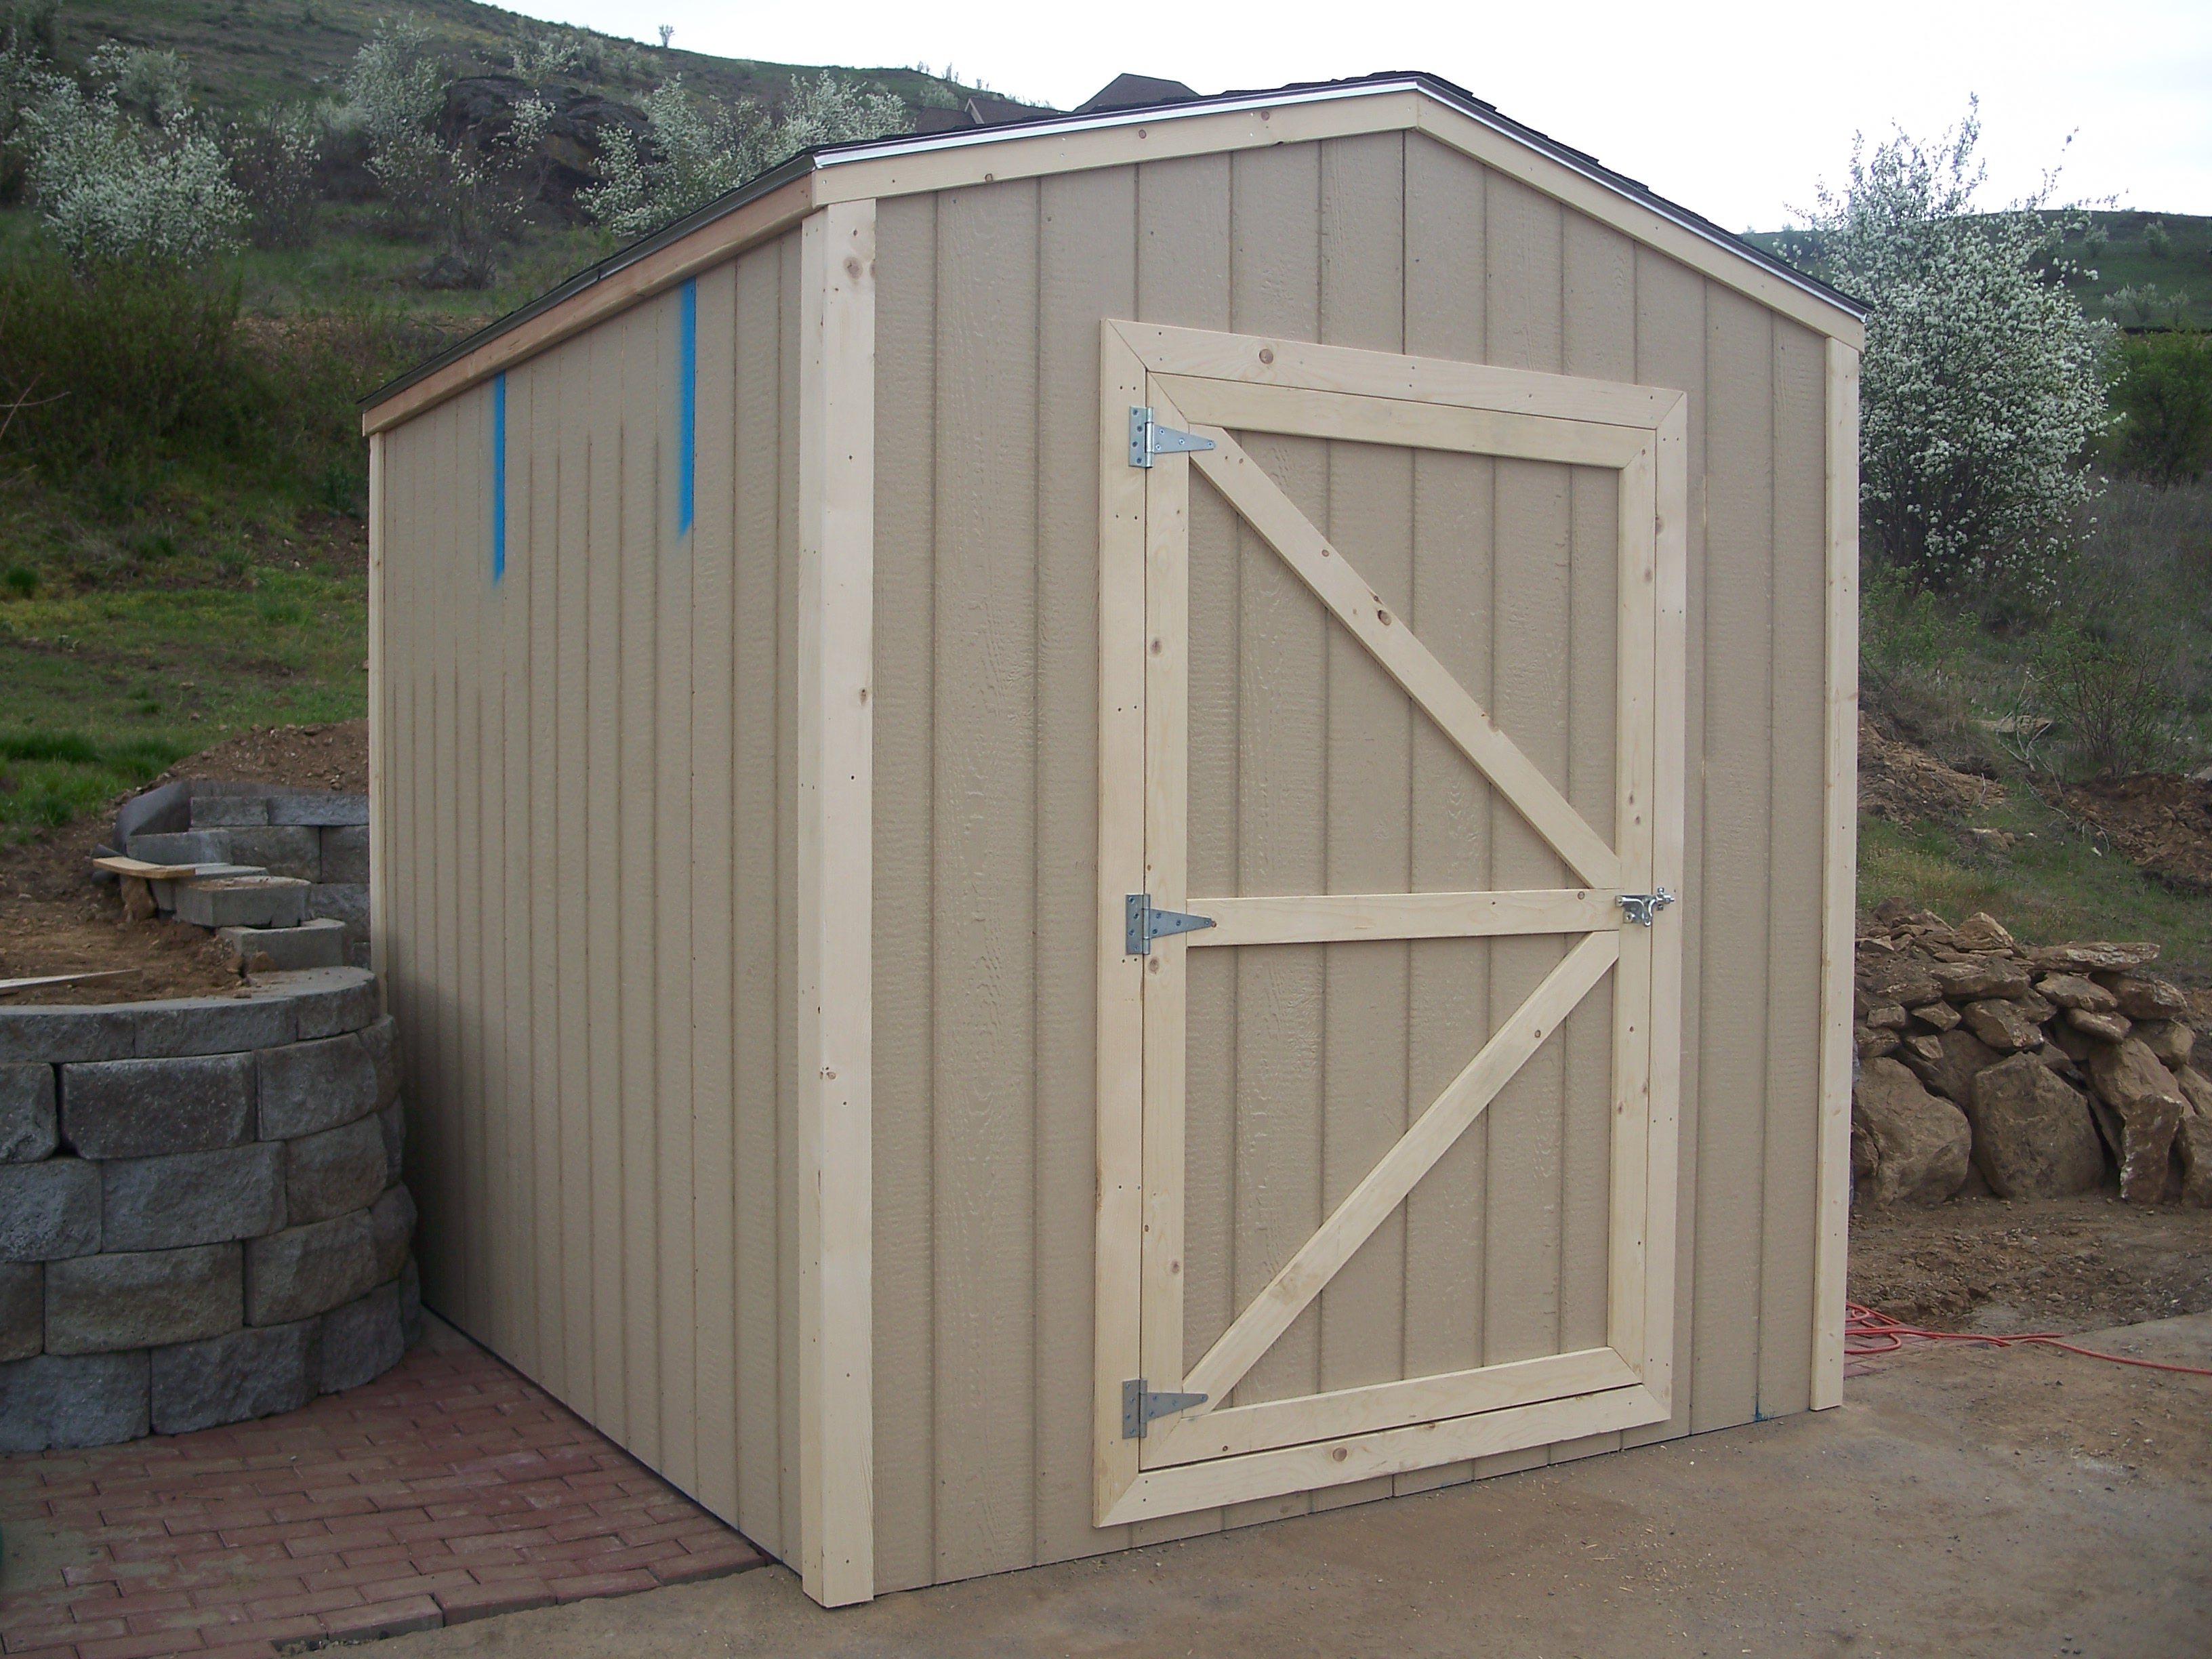 Do It Yourself Building Plans: Building A Shed Door : Diy Shed Plans